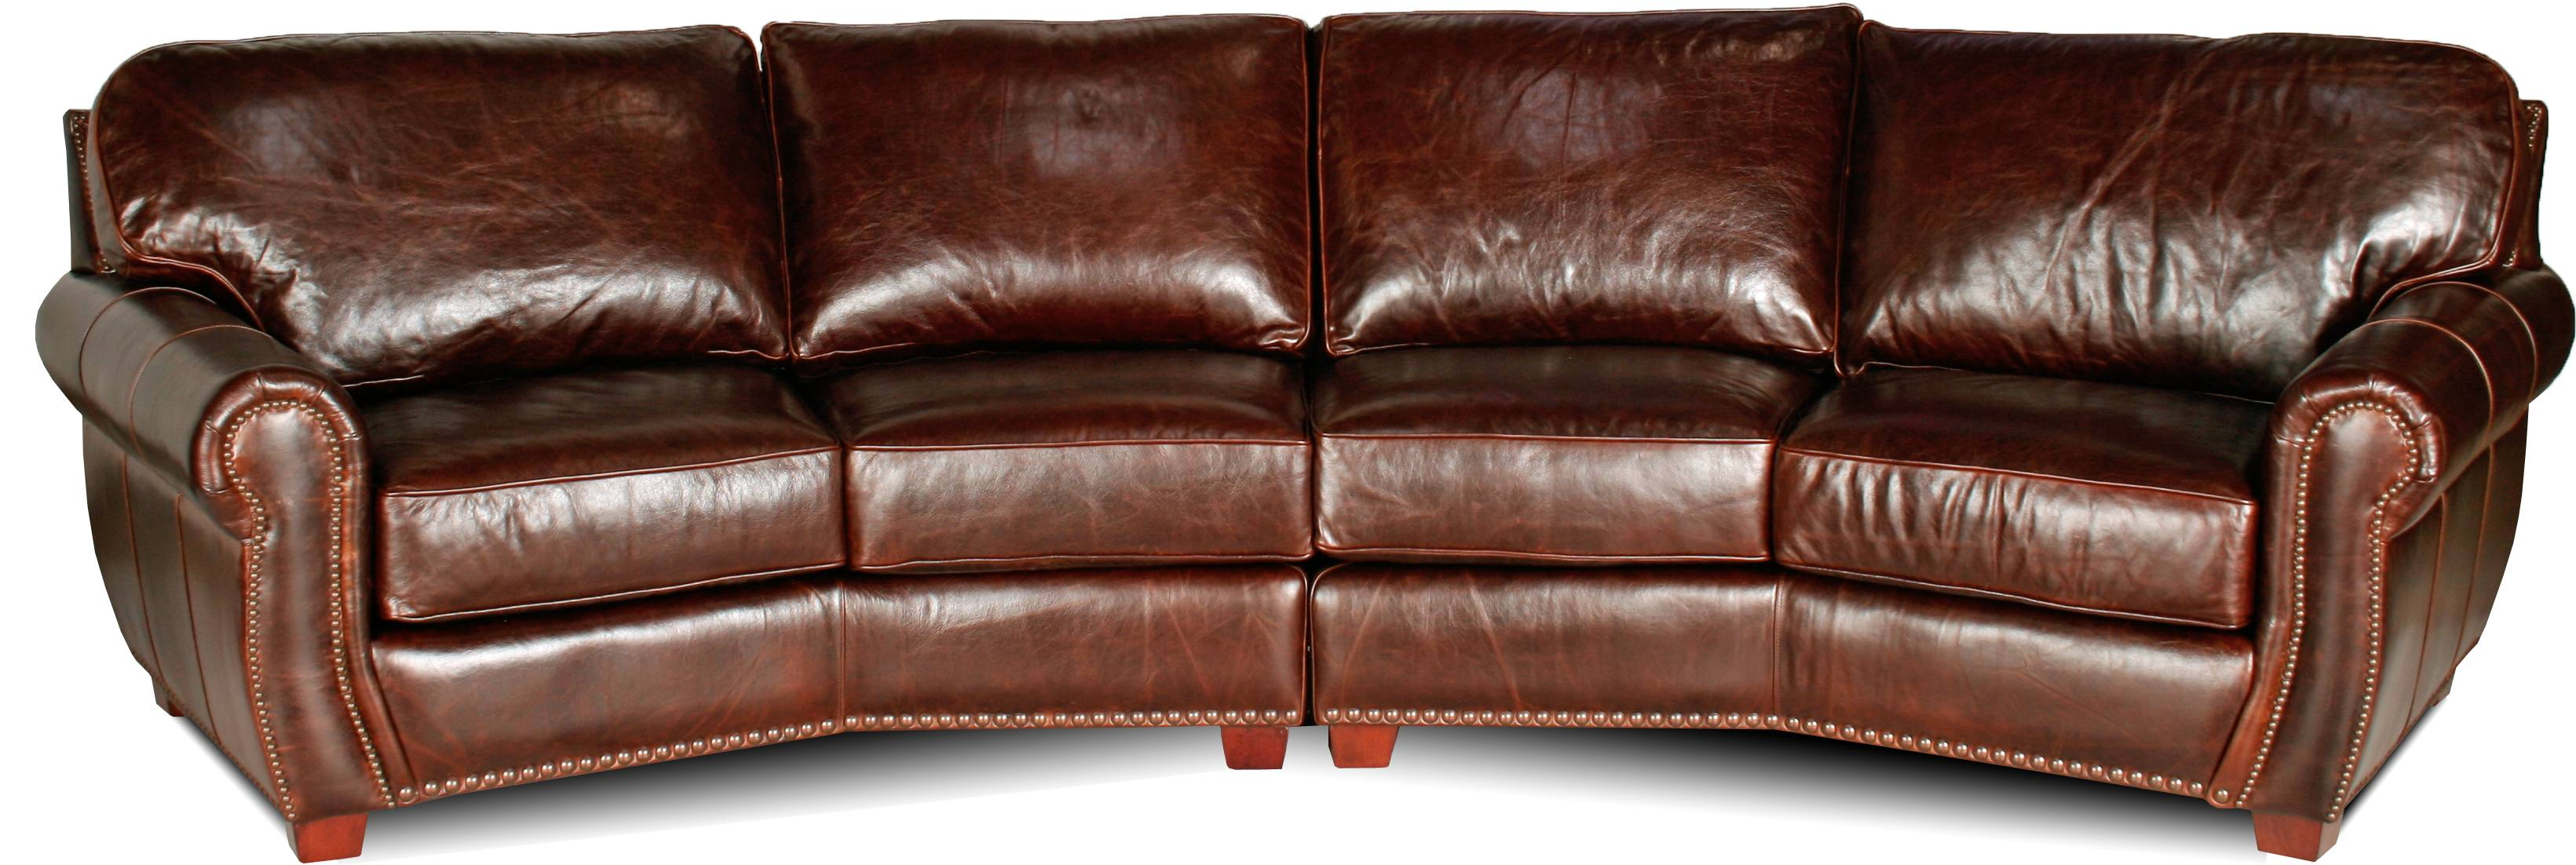 Berkshire Leather Furniture